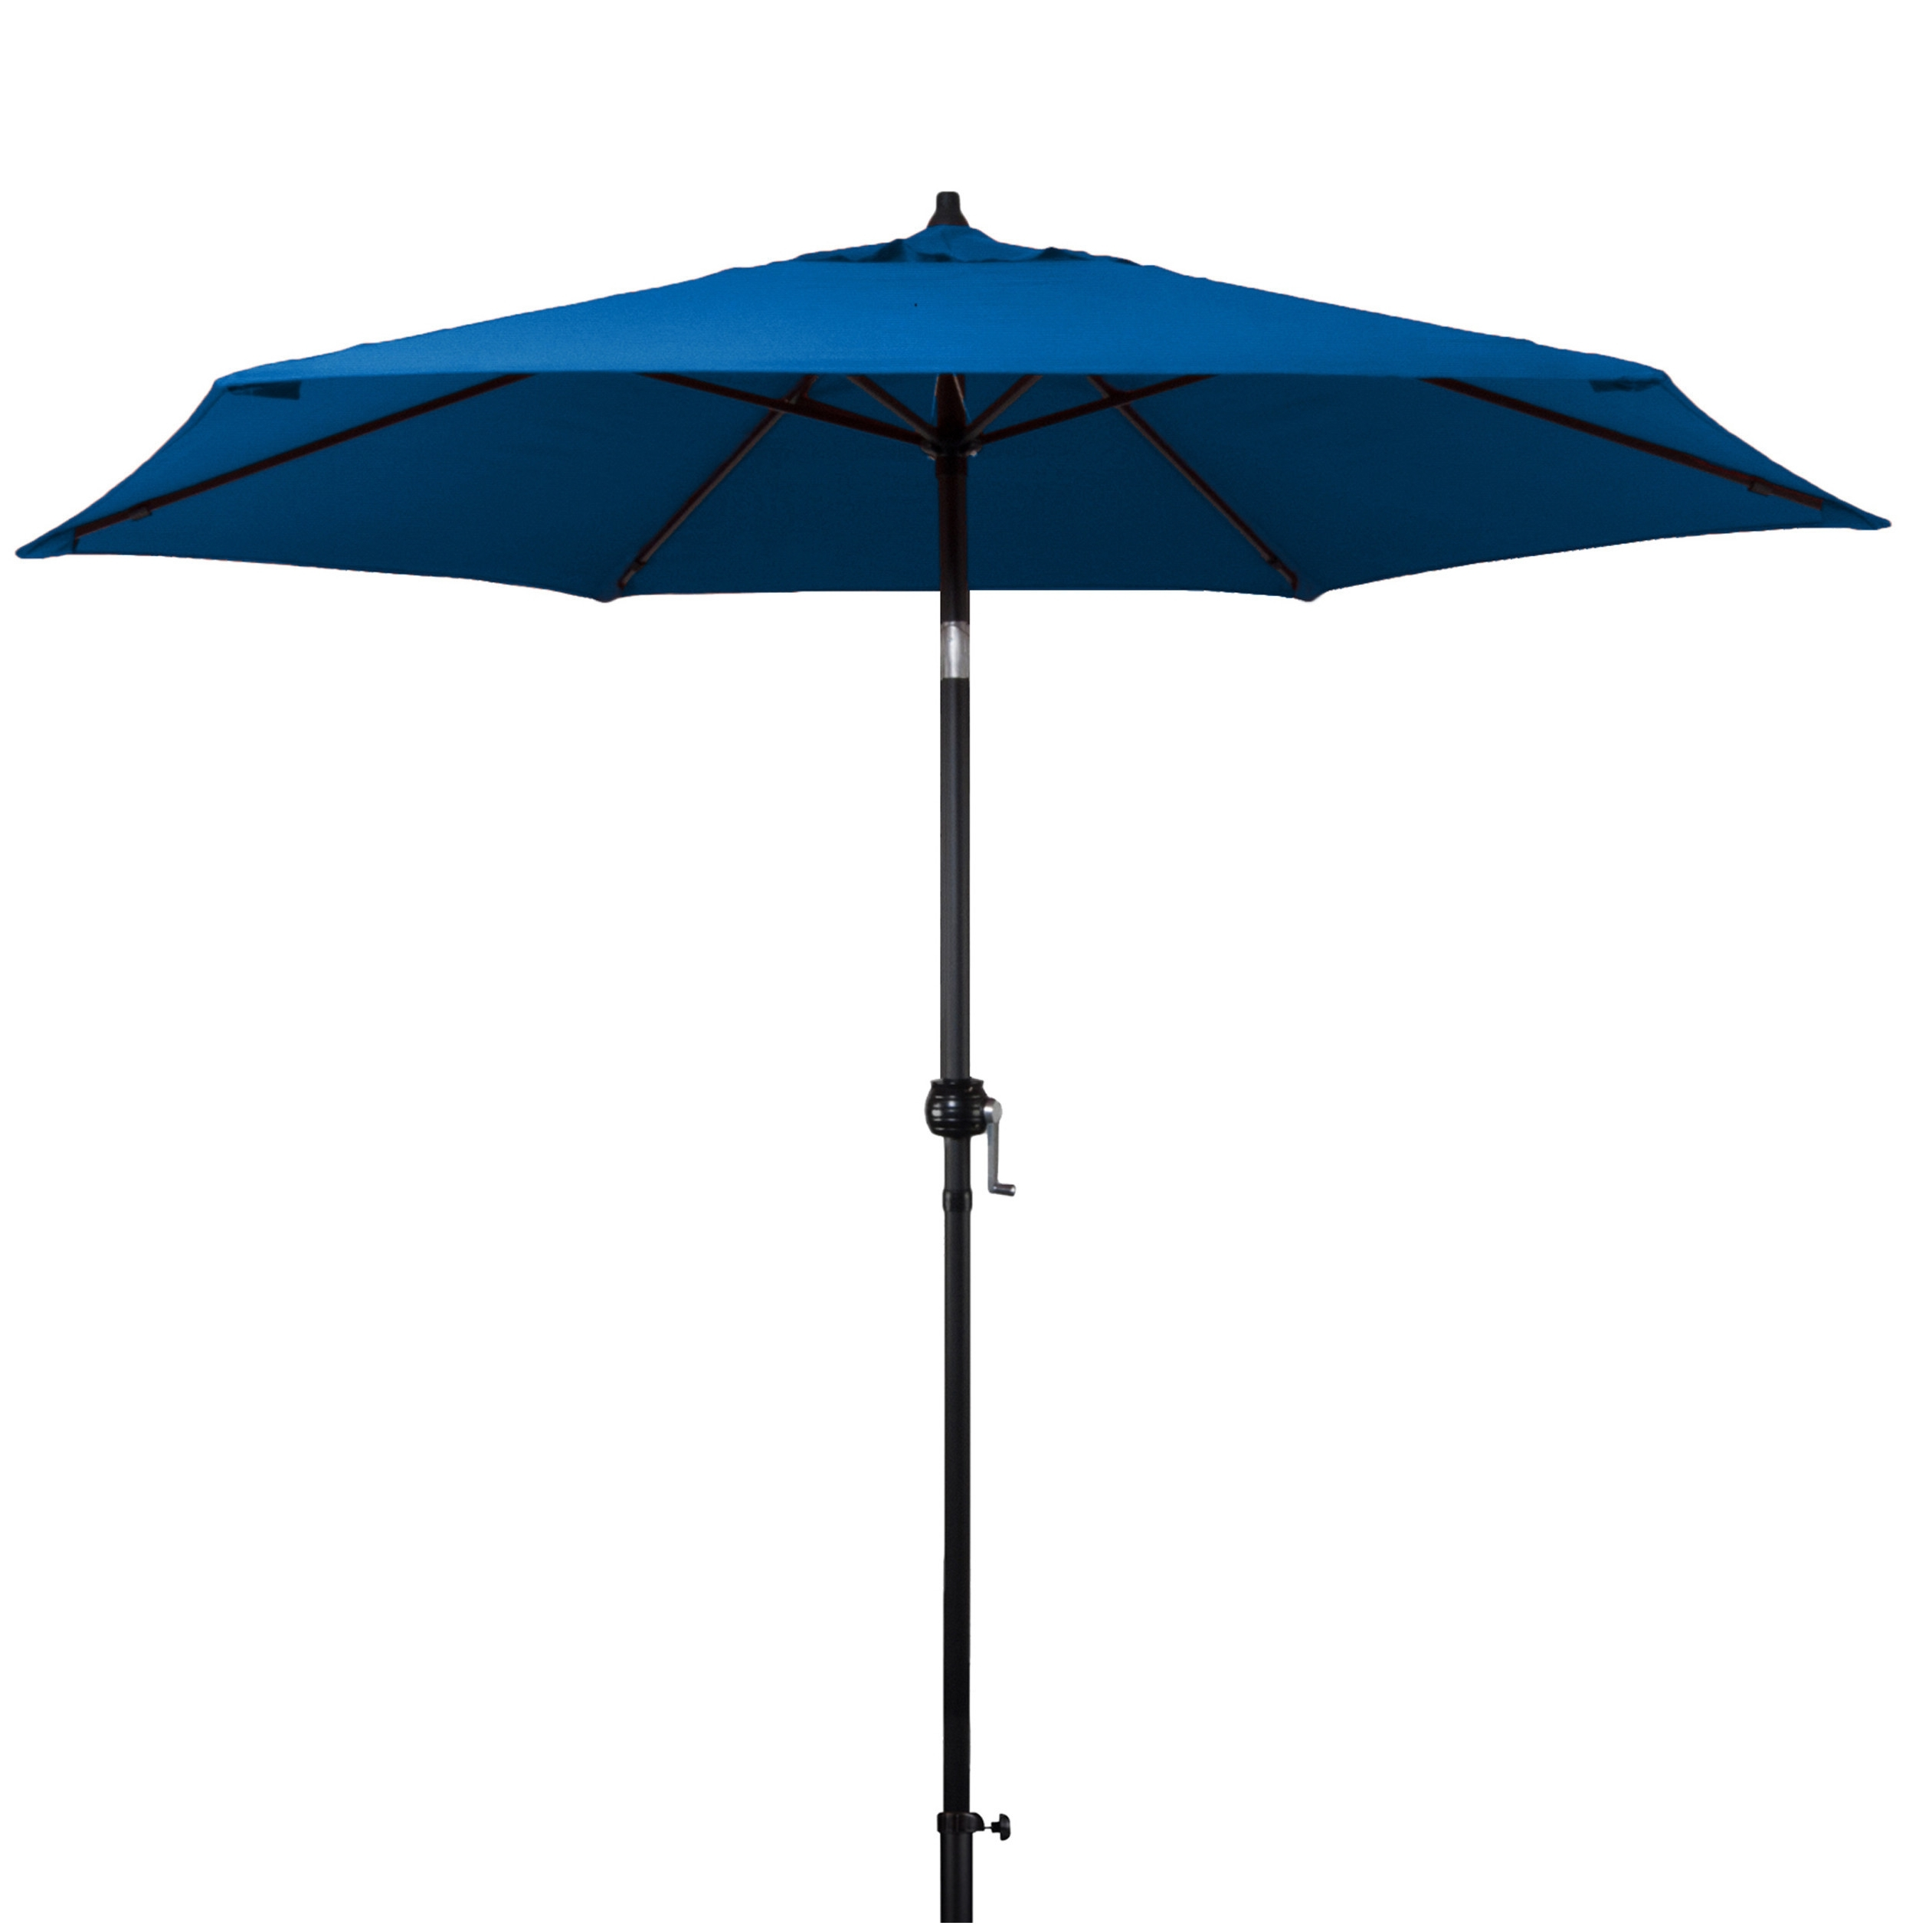 Wayfair Patio Umbrellas Pertaining To Favorite Nice Umbrella For Patio Table Umbrellas Youll Love Wayfair With Logo (View 16 of 20)